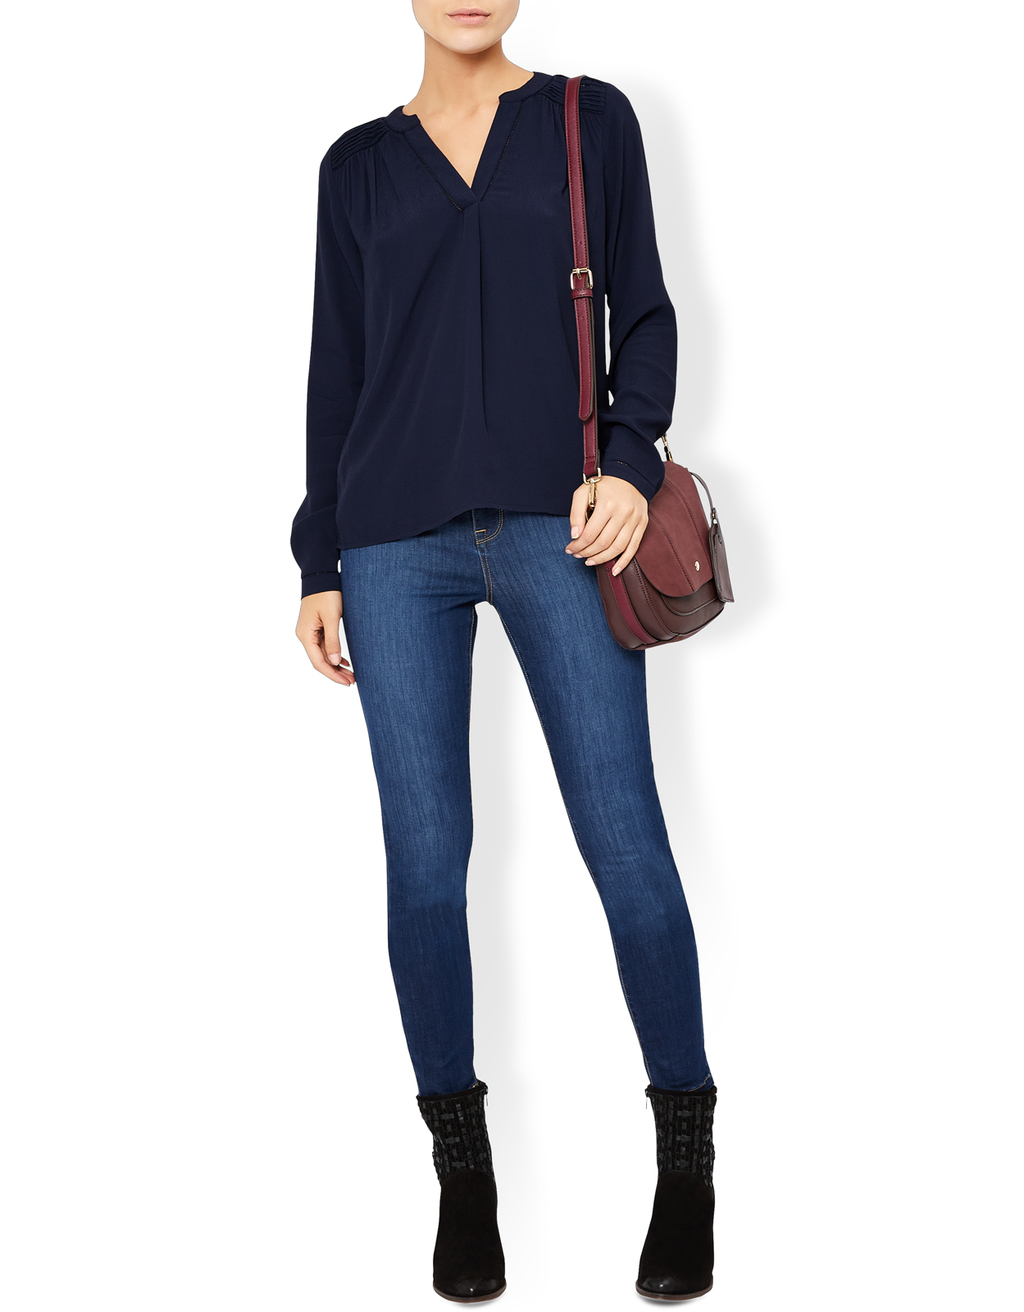 Alexis Blouse - neckline: v-neck; pattern: plain; style: blouse; predominant colour: navy; occasions: casual; length: standard; fibres: silk - 100%; fit: body skimming; sleeve length: long sleeve; sleeve style: standard; texture group: silky - light; pattern type: fabric; season: s/s 2016